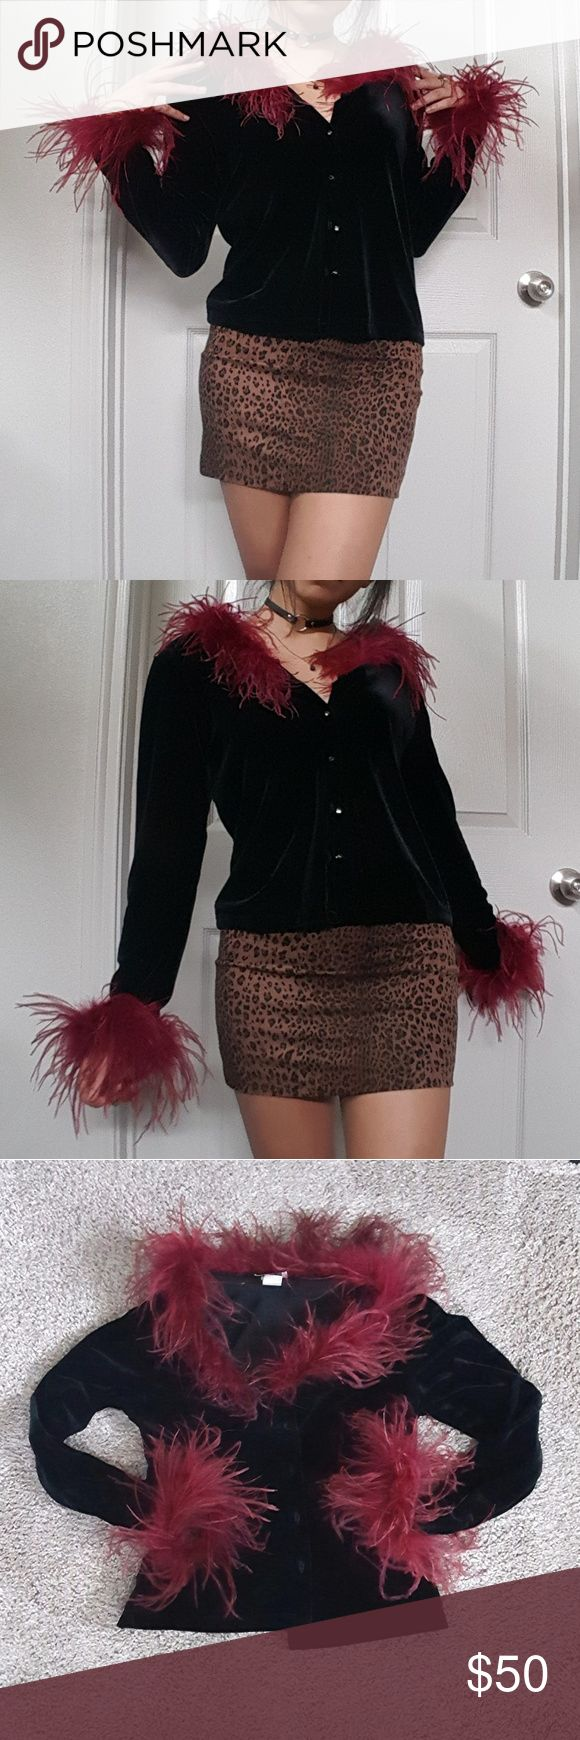 Vintage Feather Trimmed Cardigan **Vintage!!**I cannot express how fucking cute this Black velvet cardigan is. It has 2-ply marabou feather trimming in a deep red color. So 90s goth! Definitely a vintage gem! I found this baby and im kinda debating if i should sell it or not. It really is an amazing cute vintage piece! Its a size S. (Listed as UNIF for exposure) Sweaters Cardigans